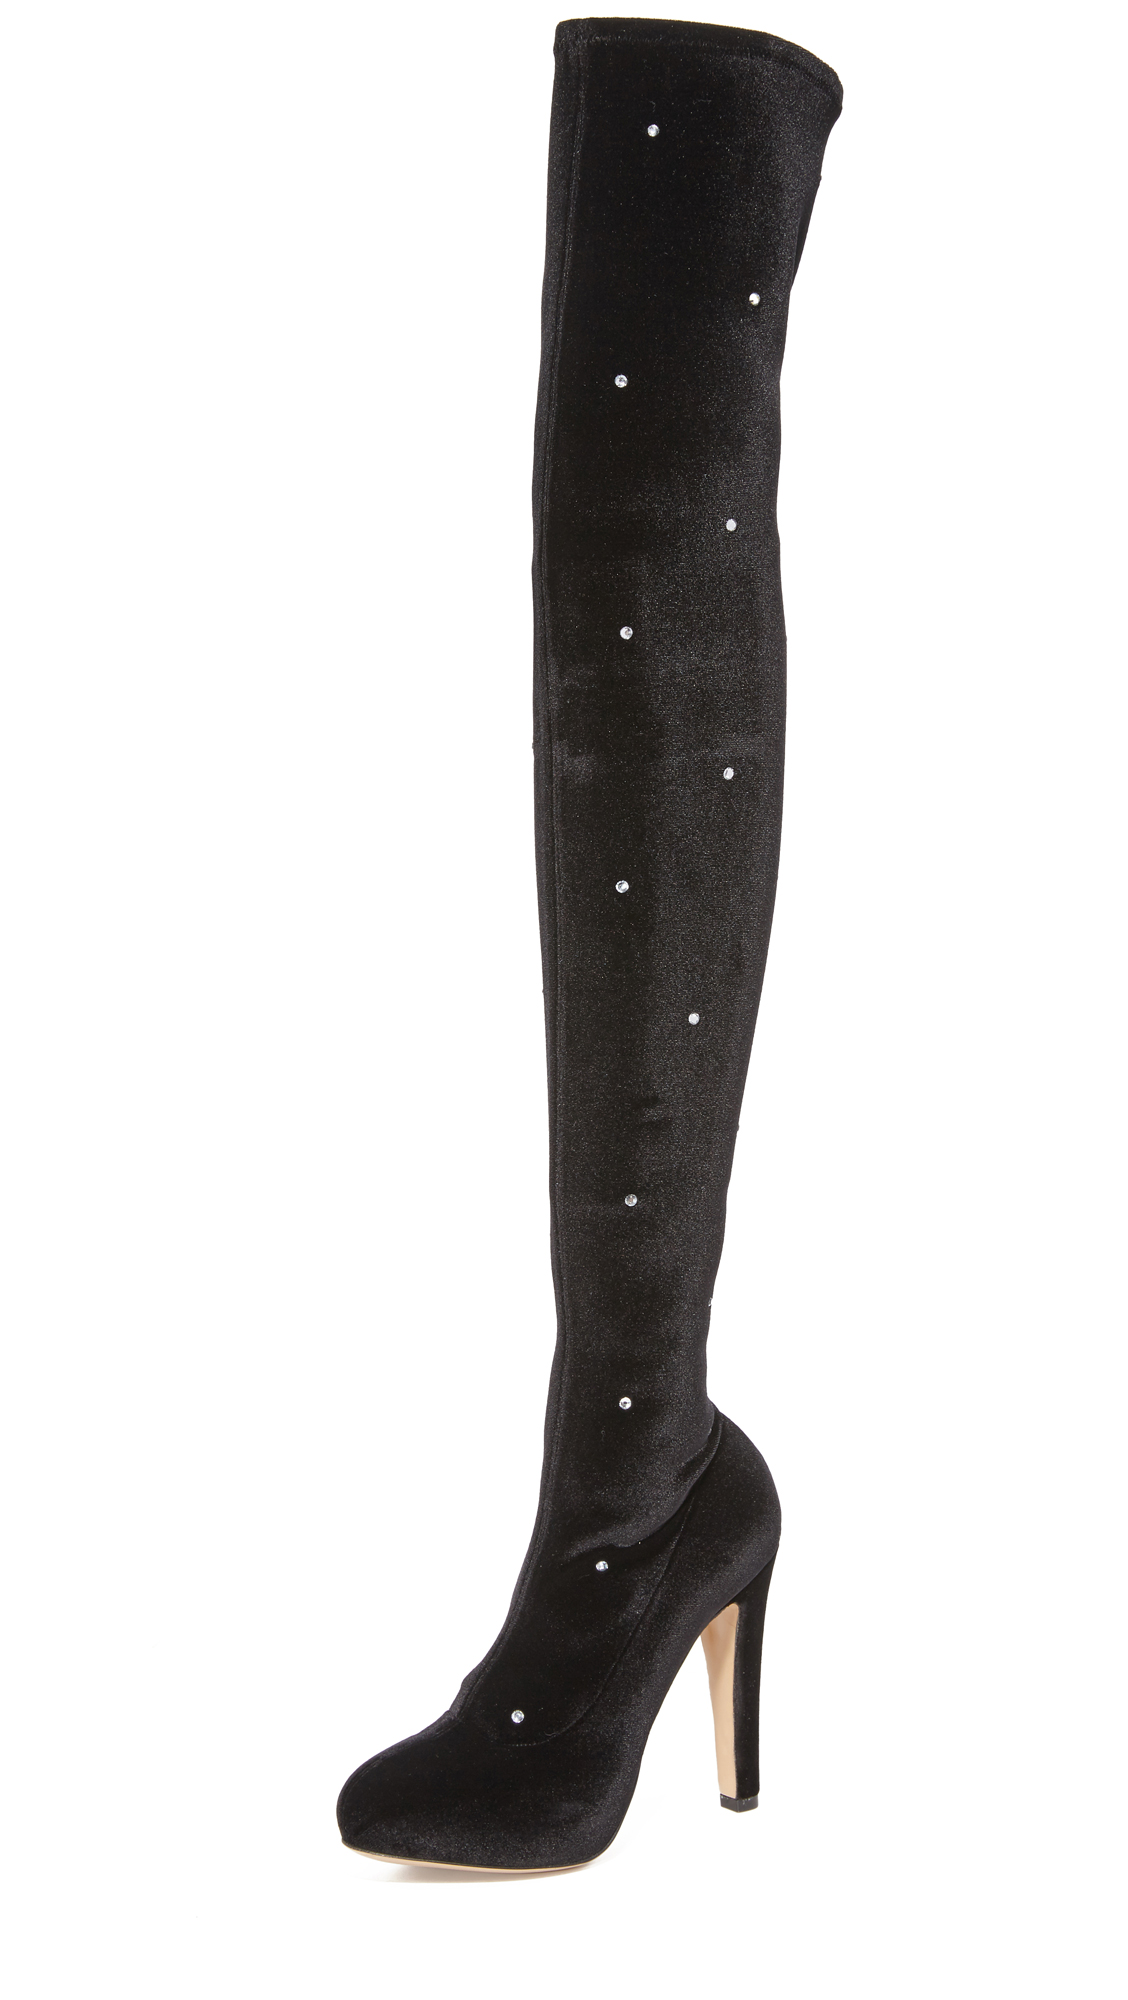 Charlotte Olympia Infinity And Beyond Knee High Boots - Black